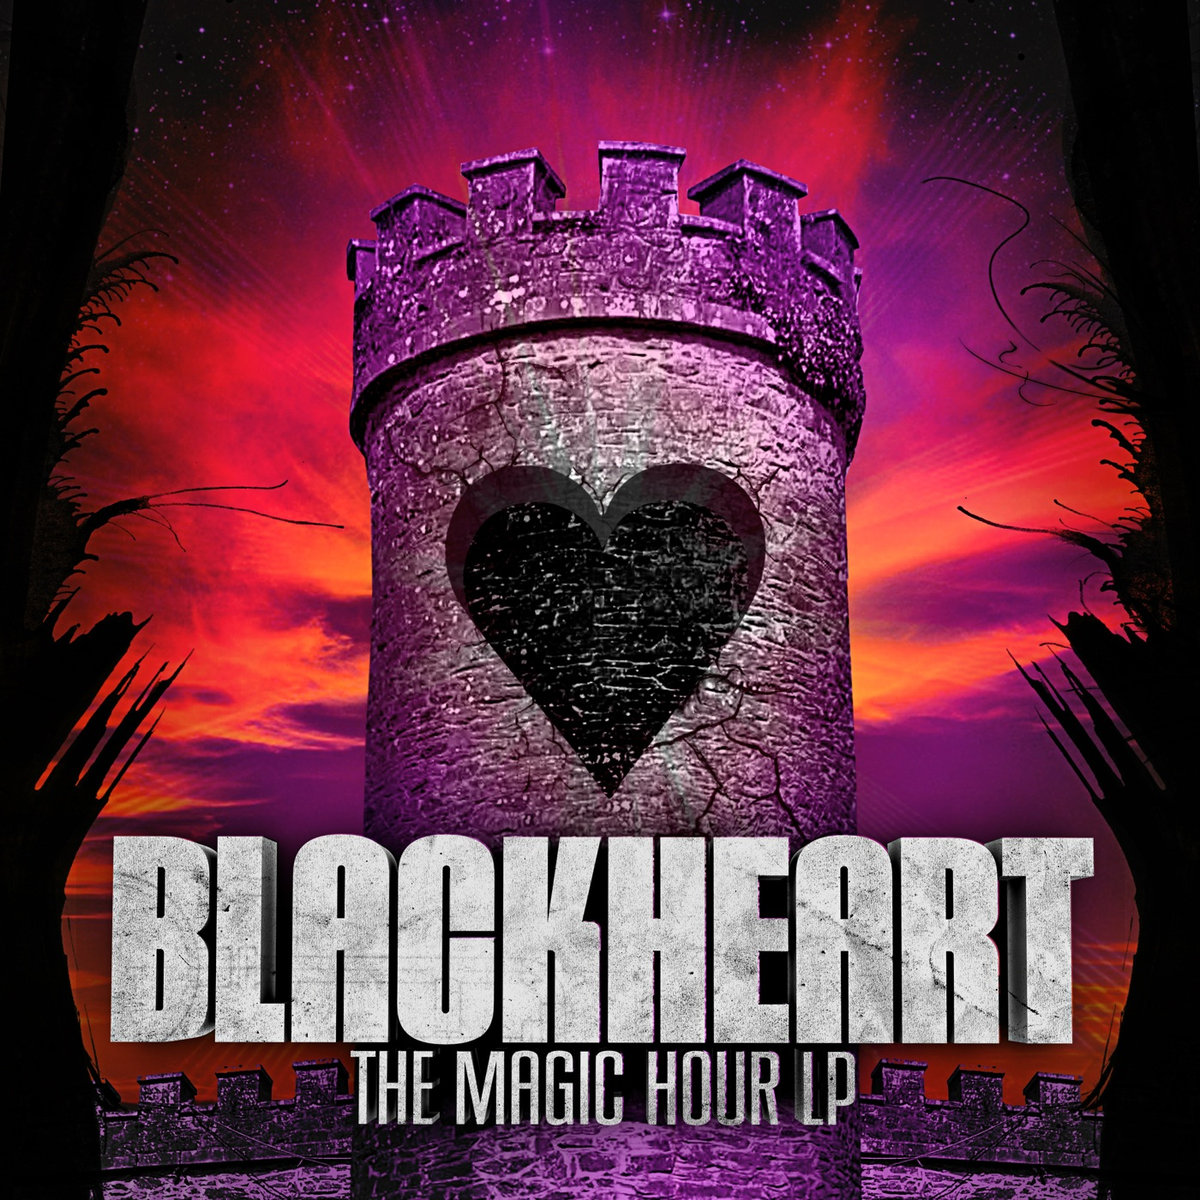 Blackheart & Bukkha - Hyperlink @ 'The Magic Hour' album (electronic, dubstep)